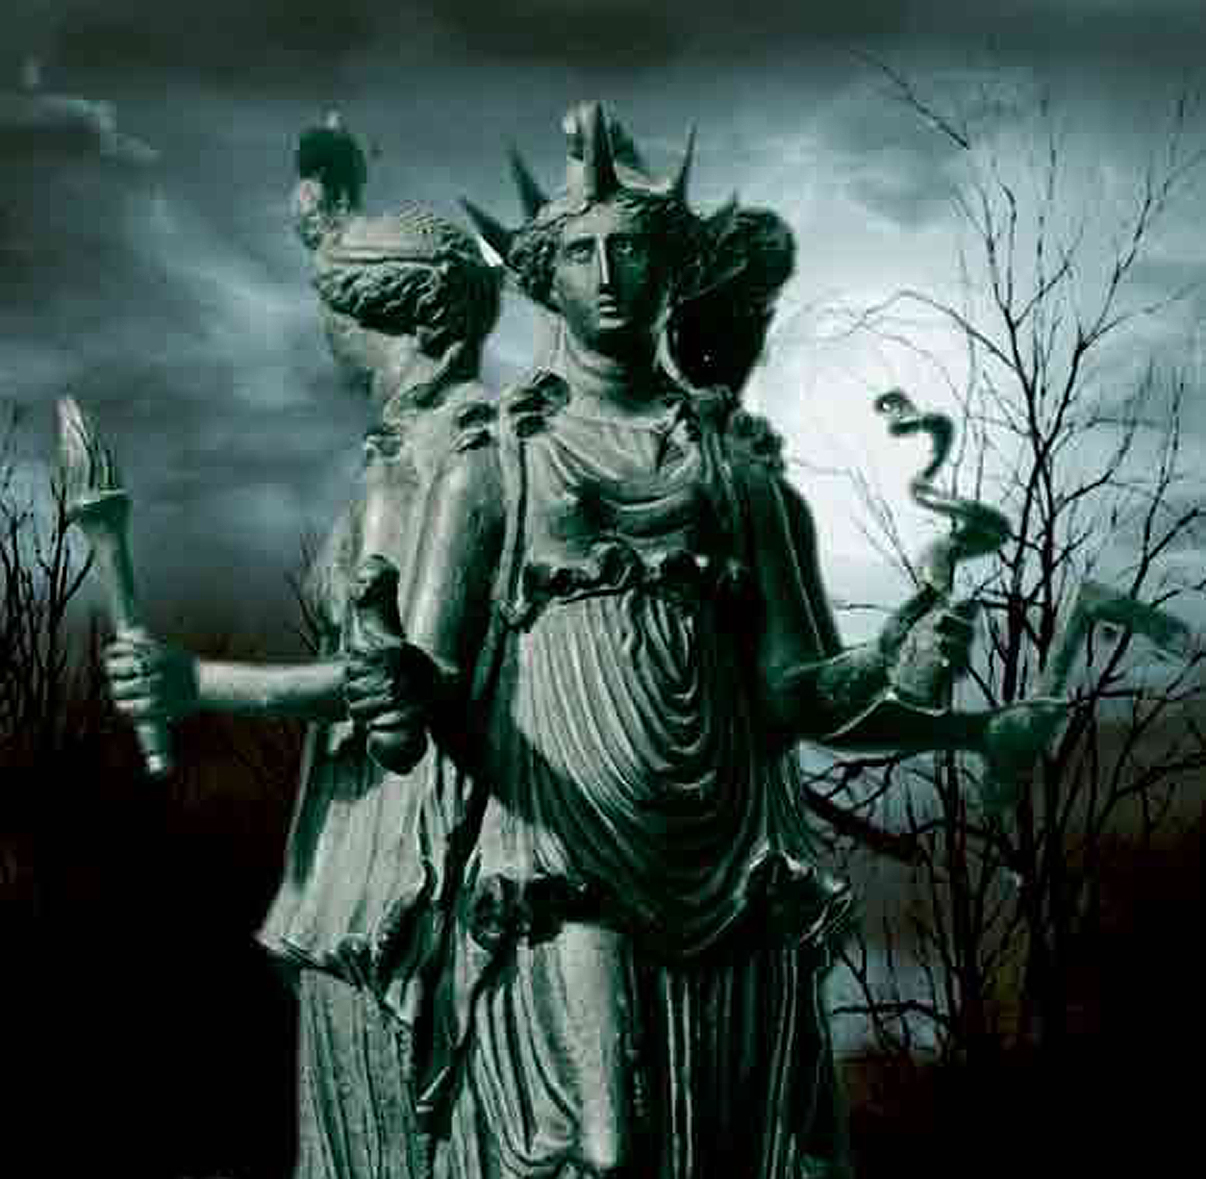 Hekate - Mother of All and goddess of Magic and the Underworld.